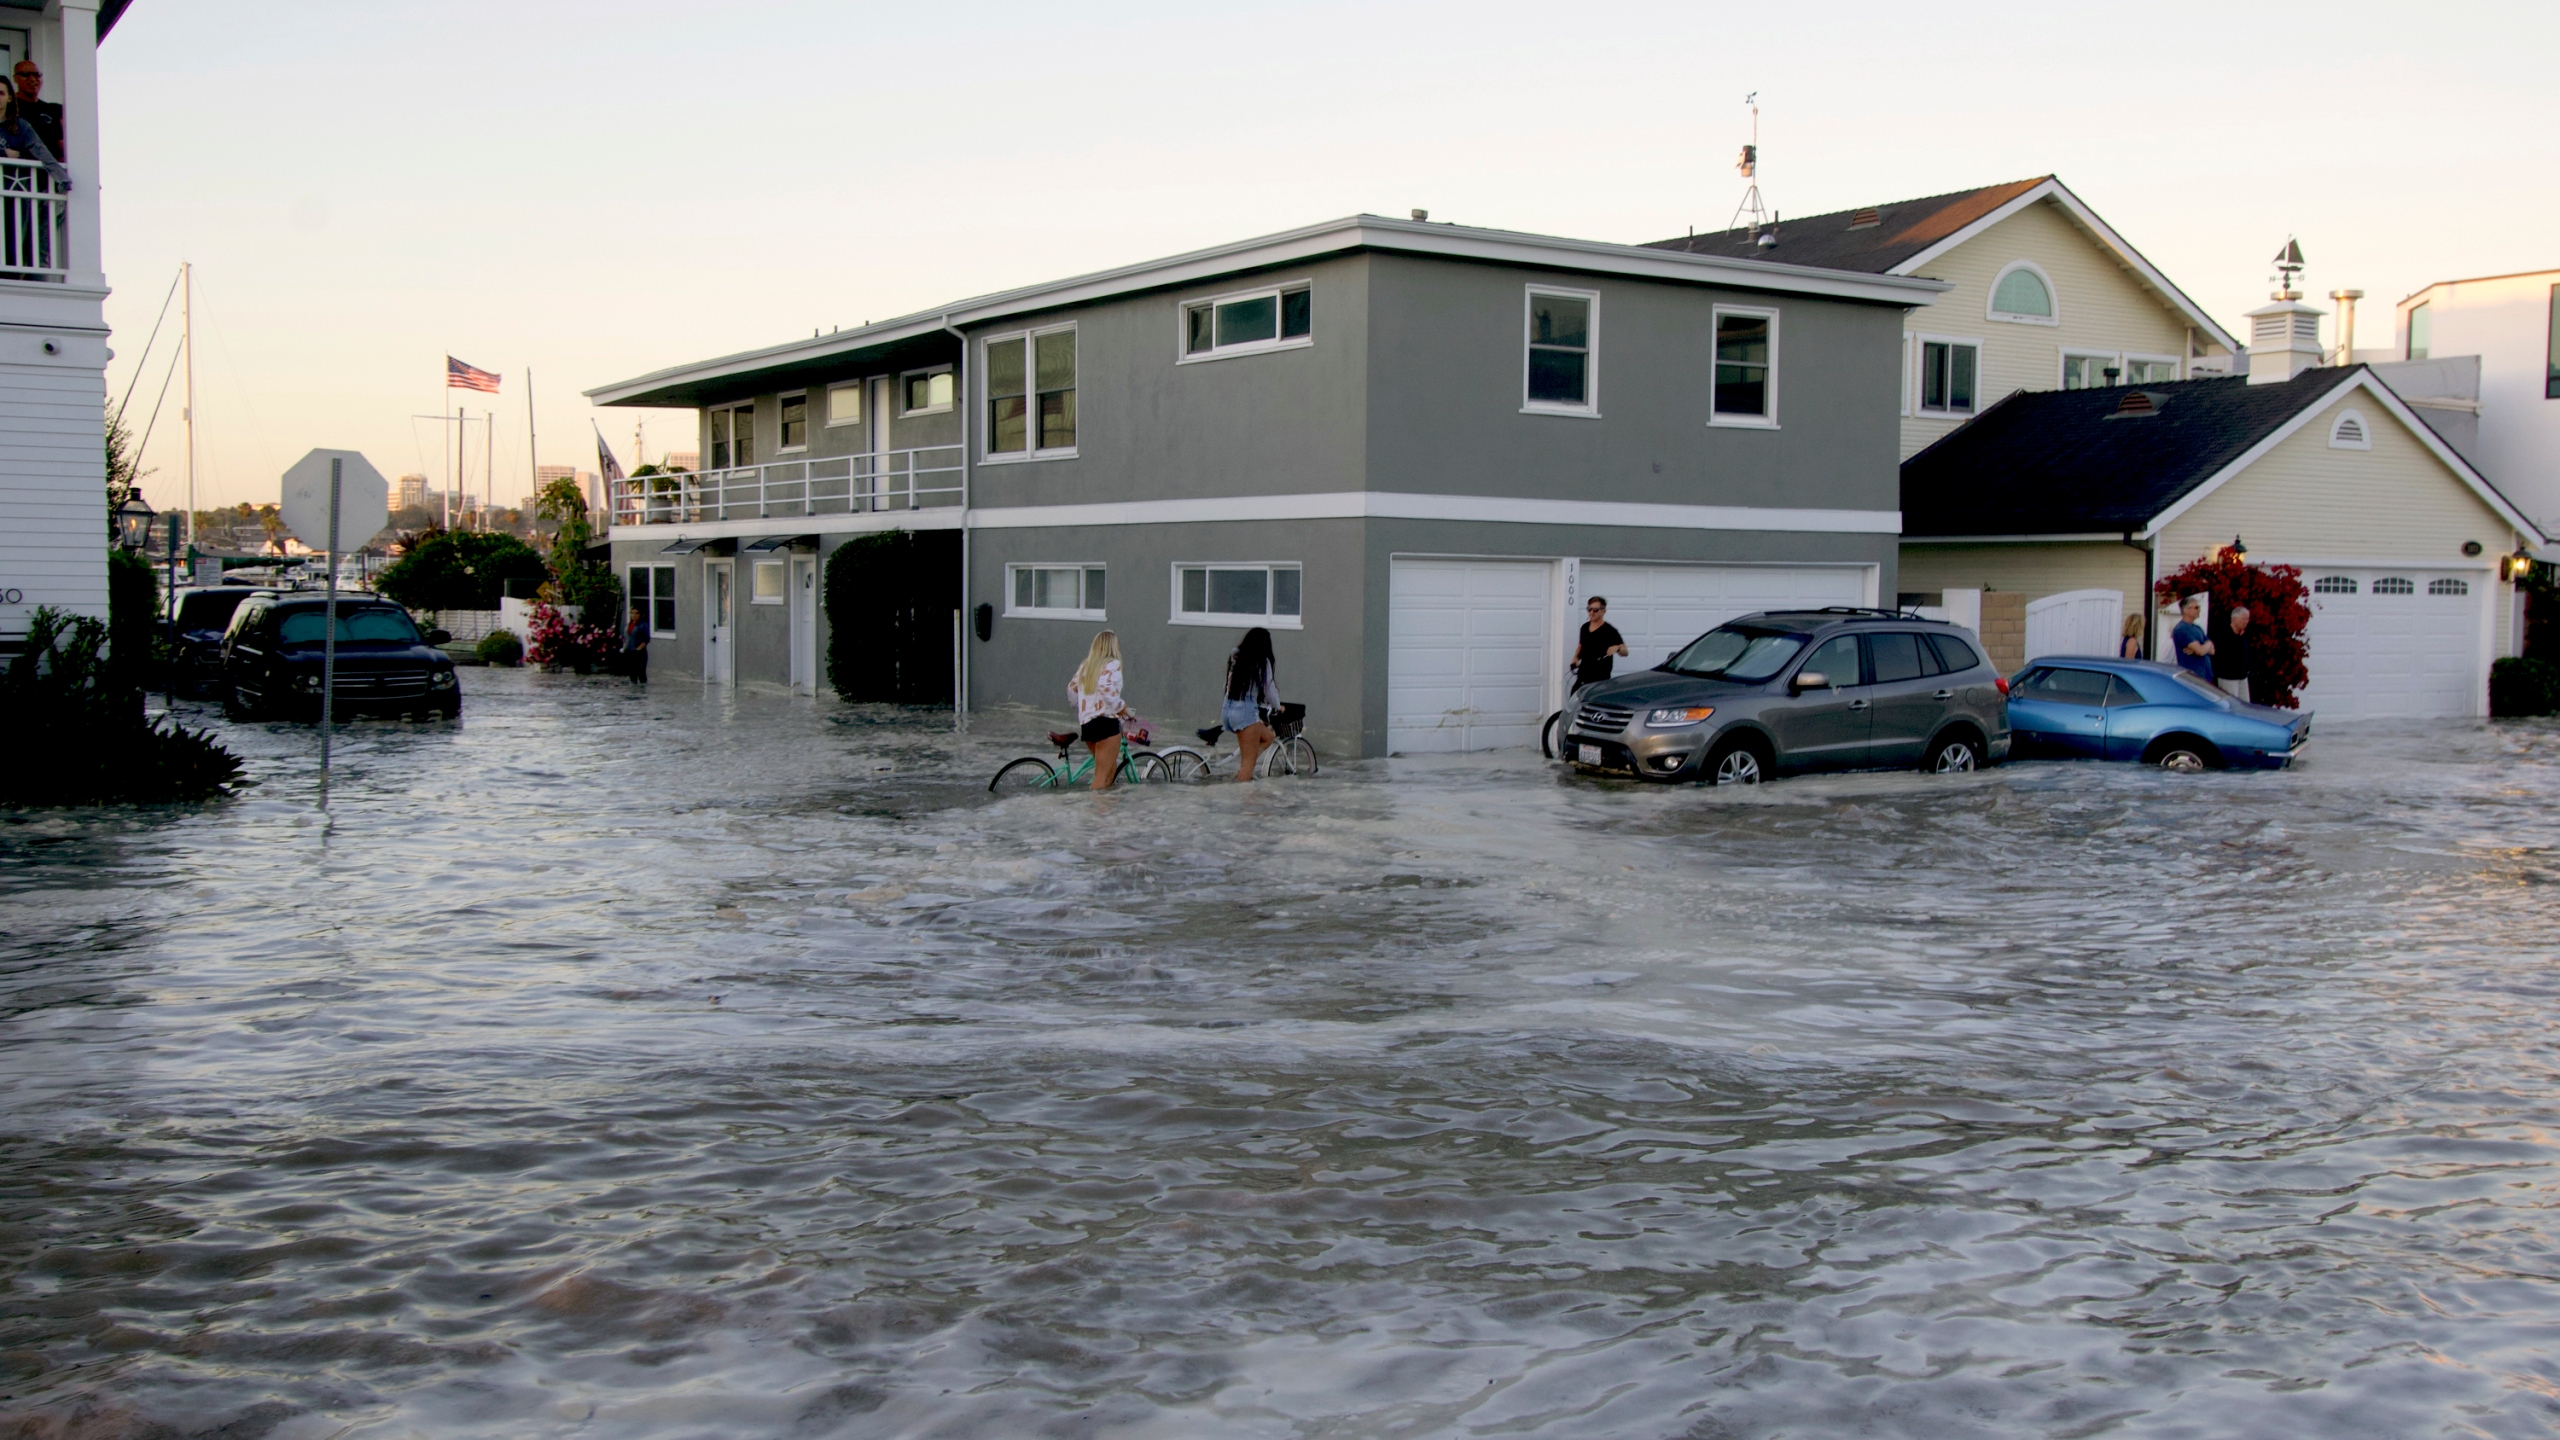 Streets in the Balboa Peninsula were flooded by coastal tides and high surf in Newport Beach, Calif., on July 3, 2020. (AP Photo/Matt Hartman)